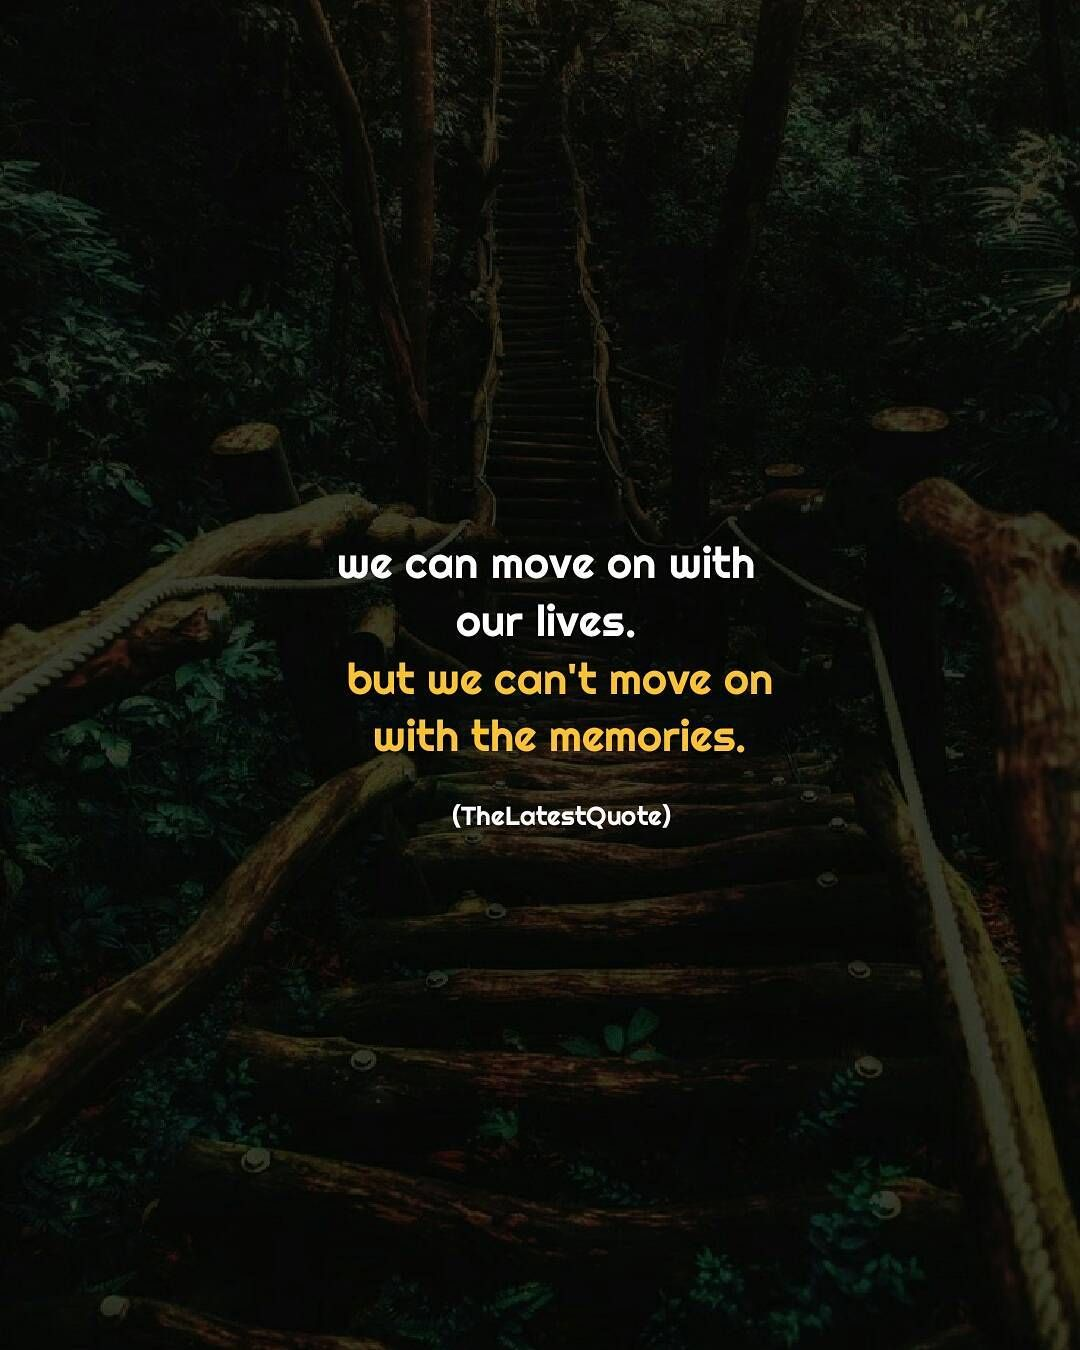 We Can Move On With Our Lives But We Can T Move On With The Memories Author Anshita Solanki T Happy Quotes Smile Short Mottos Quotes Inspirational Positive